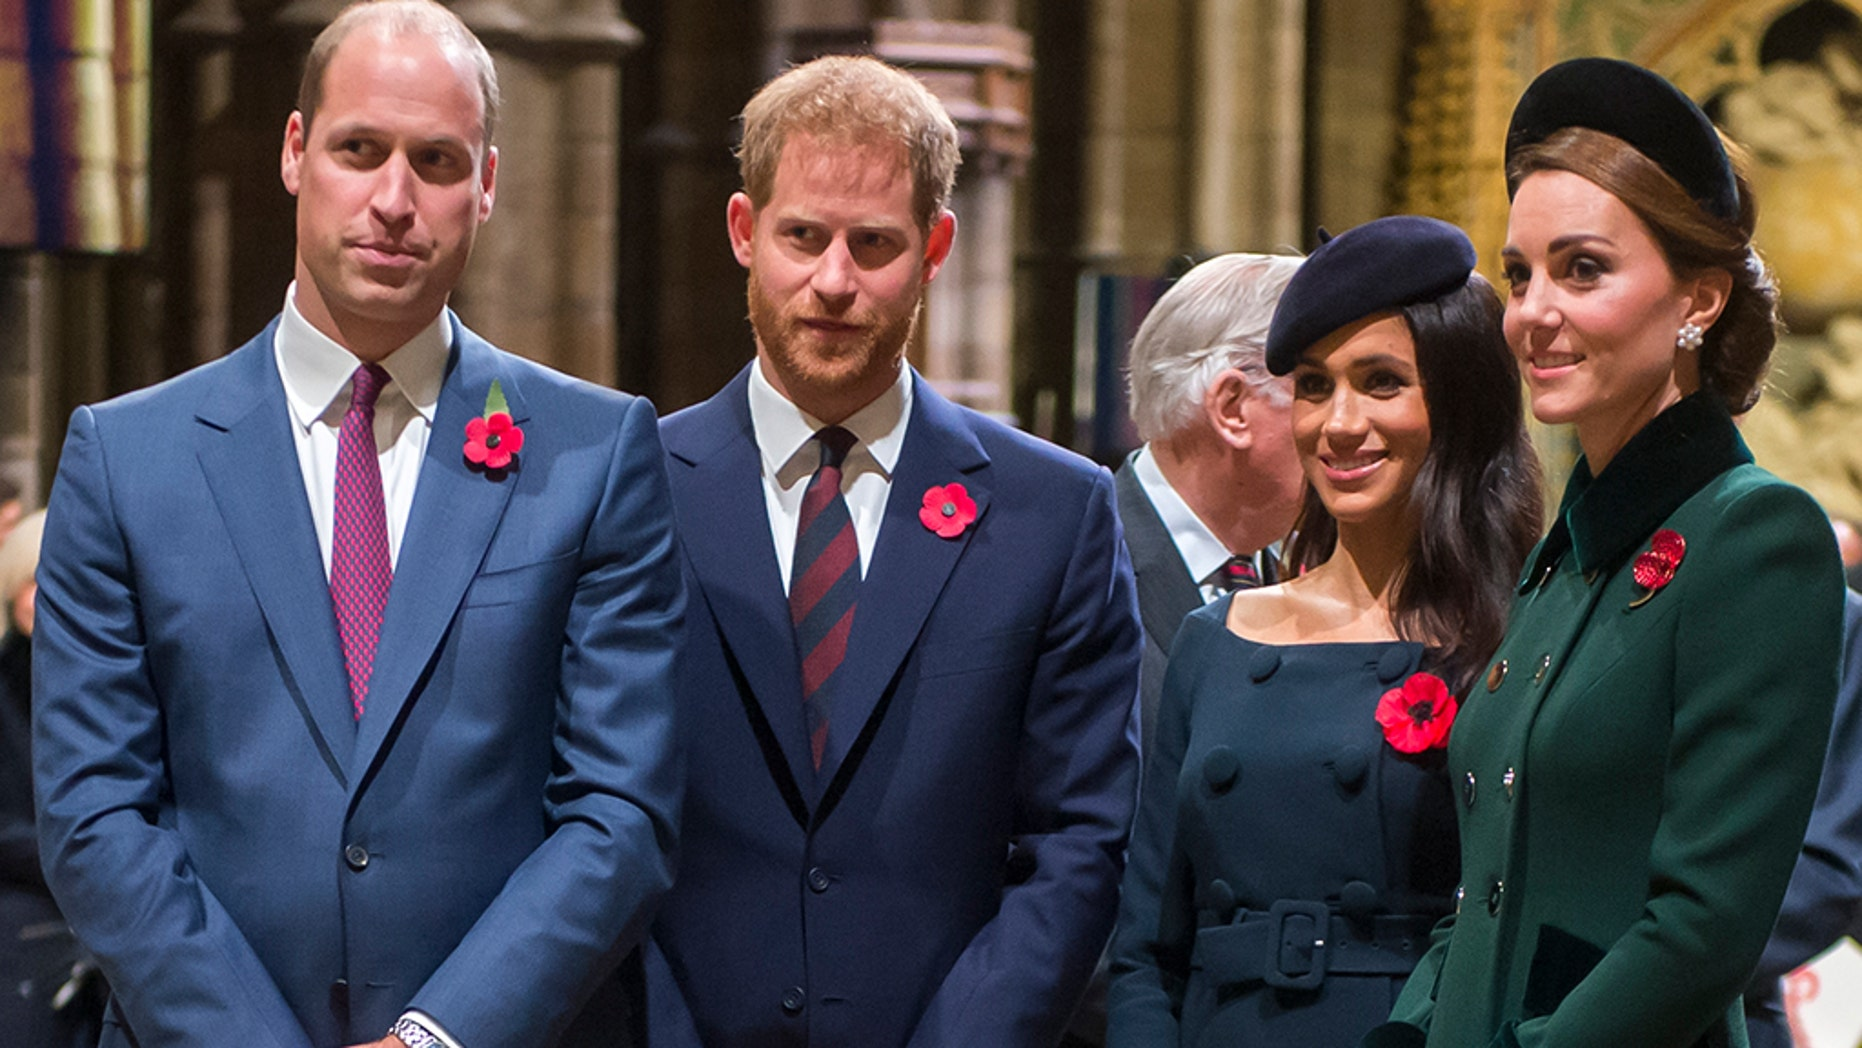 Prince William, Duke of Cambridge, Prince Harry, Duke of Sussex and Meghan, Duchess of Sussex and Catherine, Duchess of Cambridge, attend a service marking the centenary of WW1 armistice at Westminster Abbey on November 11, 2018 in London, England.